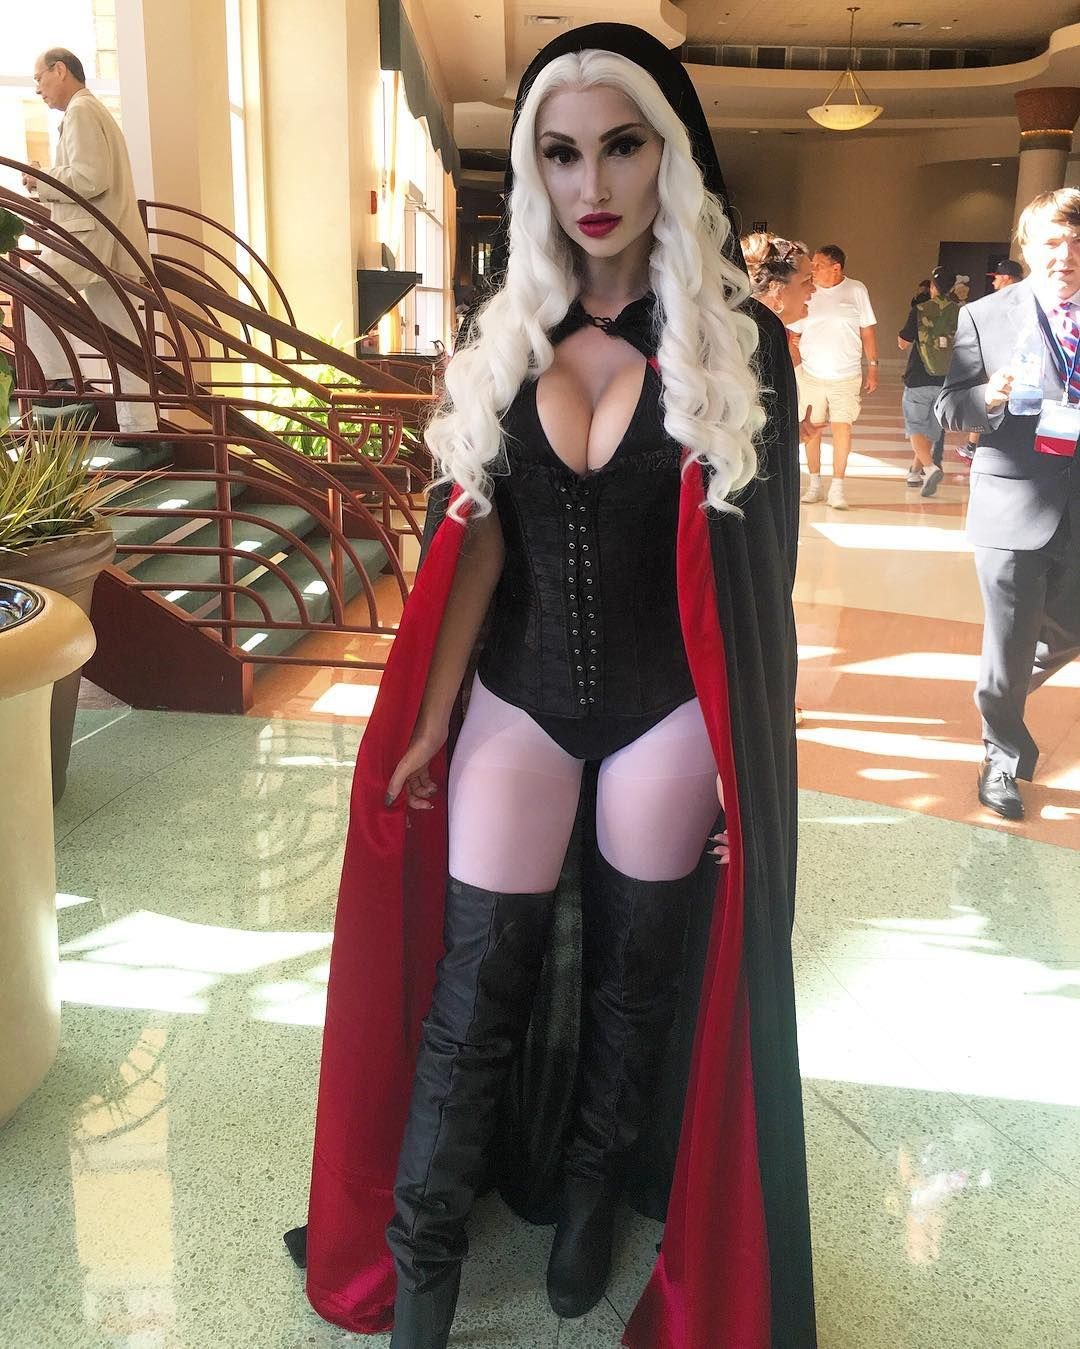 Touching lady death cosplay porn apologise